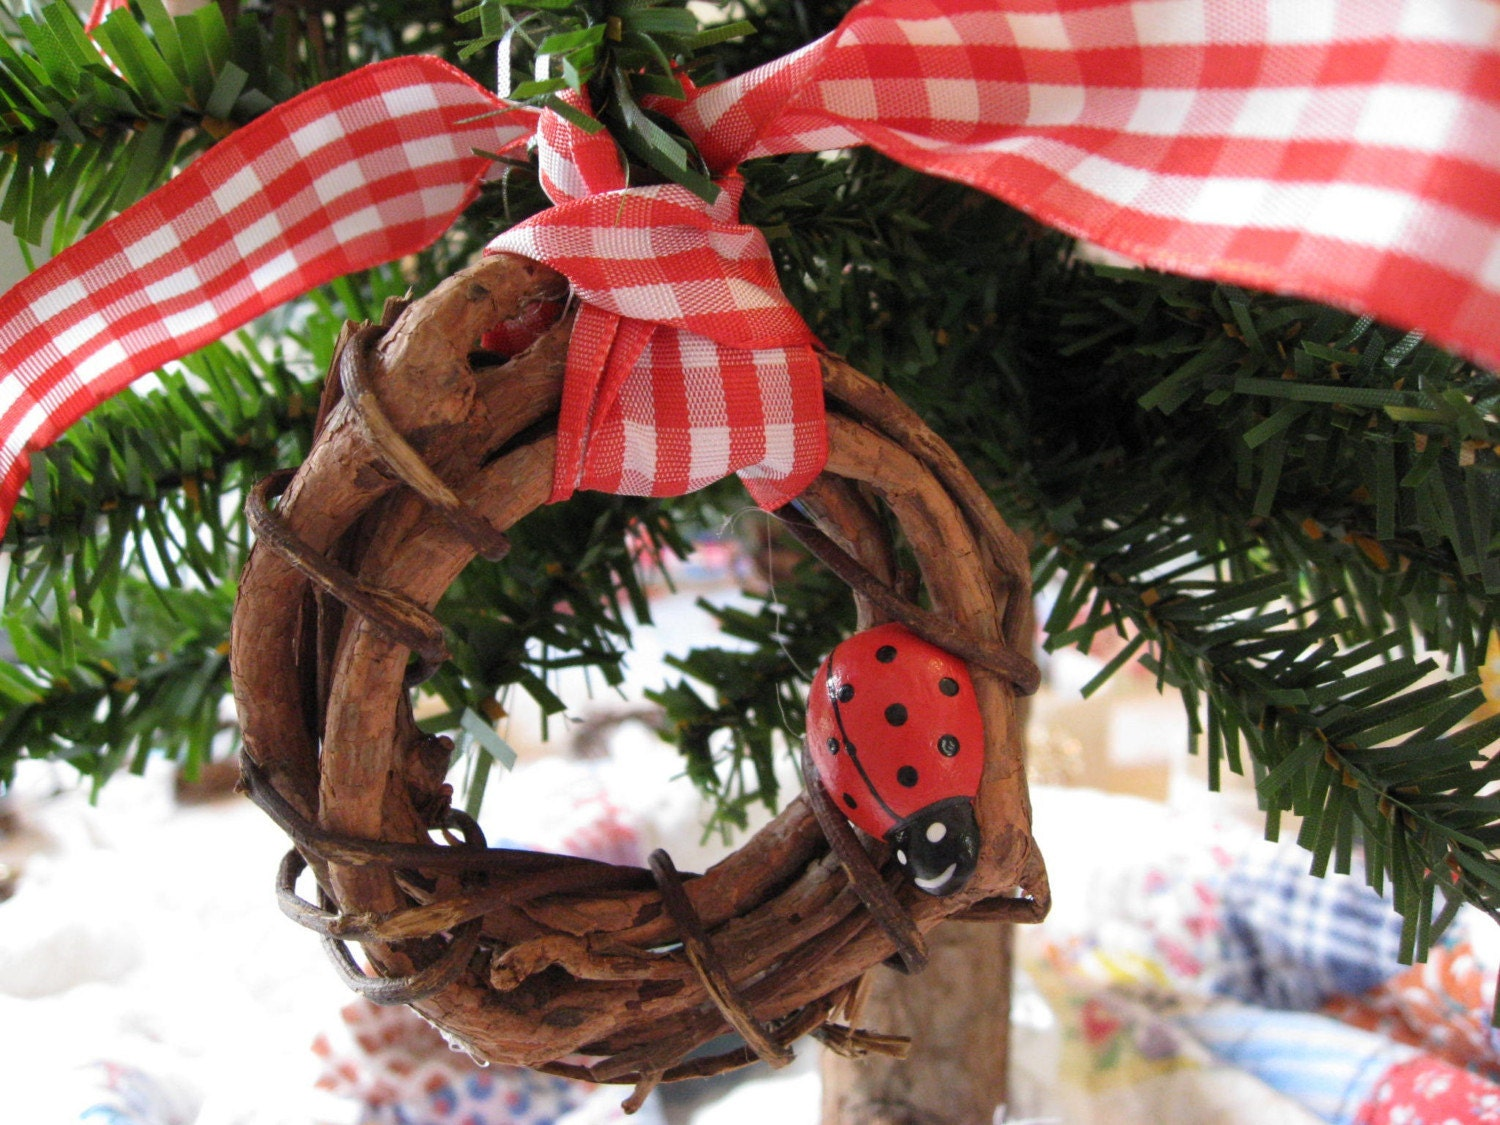 Sale - 4 Lady Bug Christmas Tree Ornaments